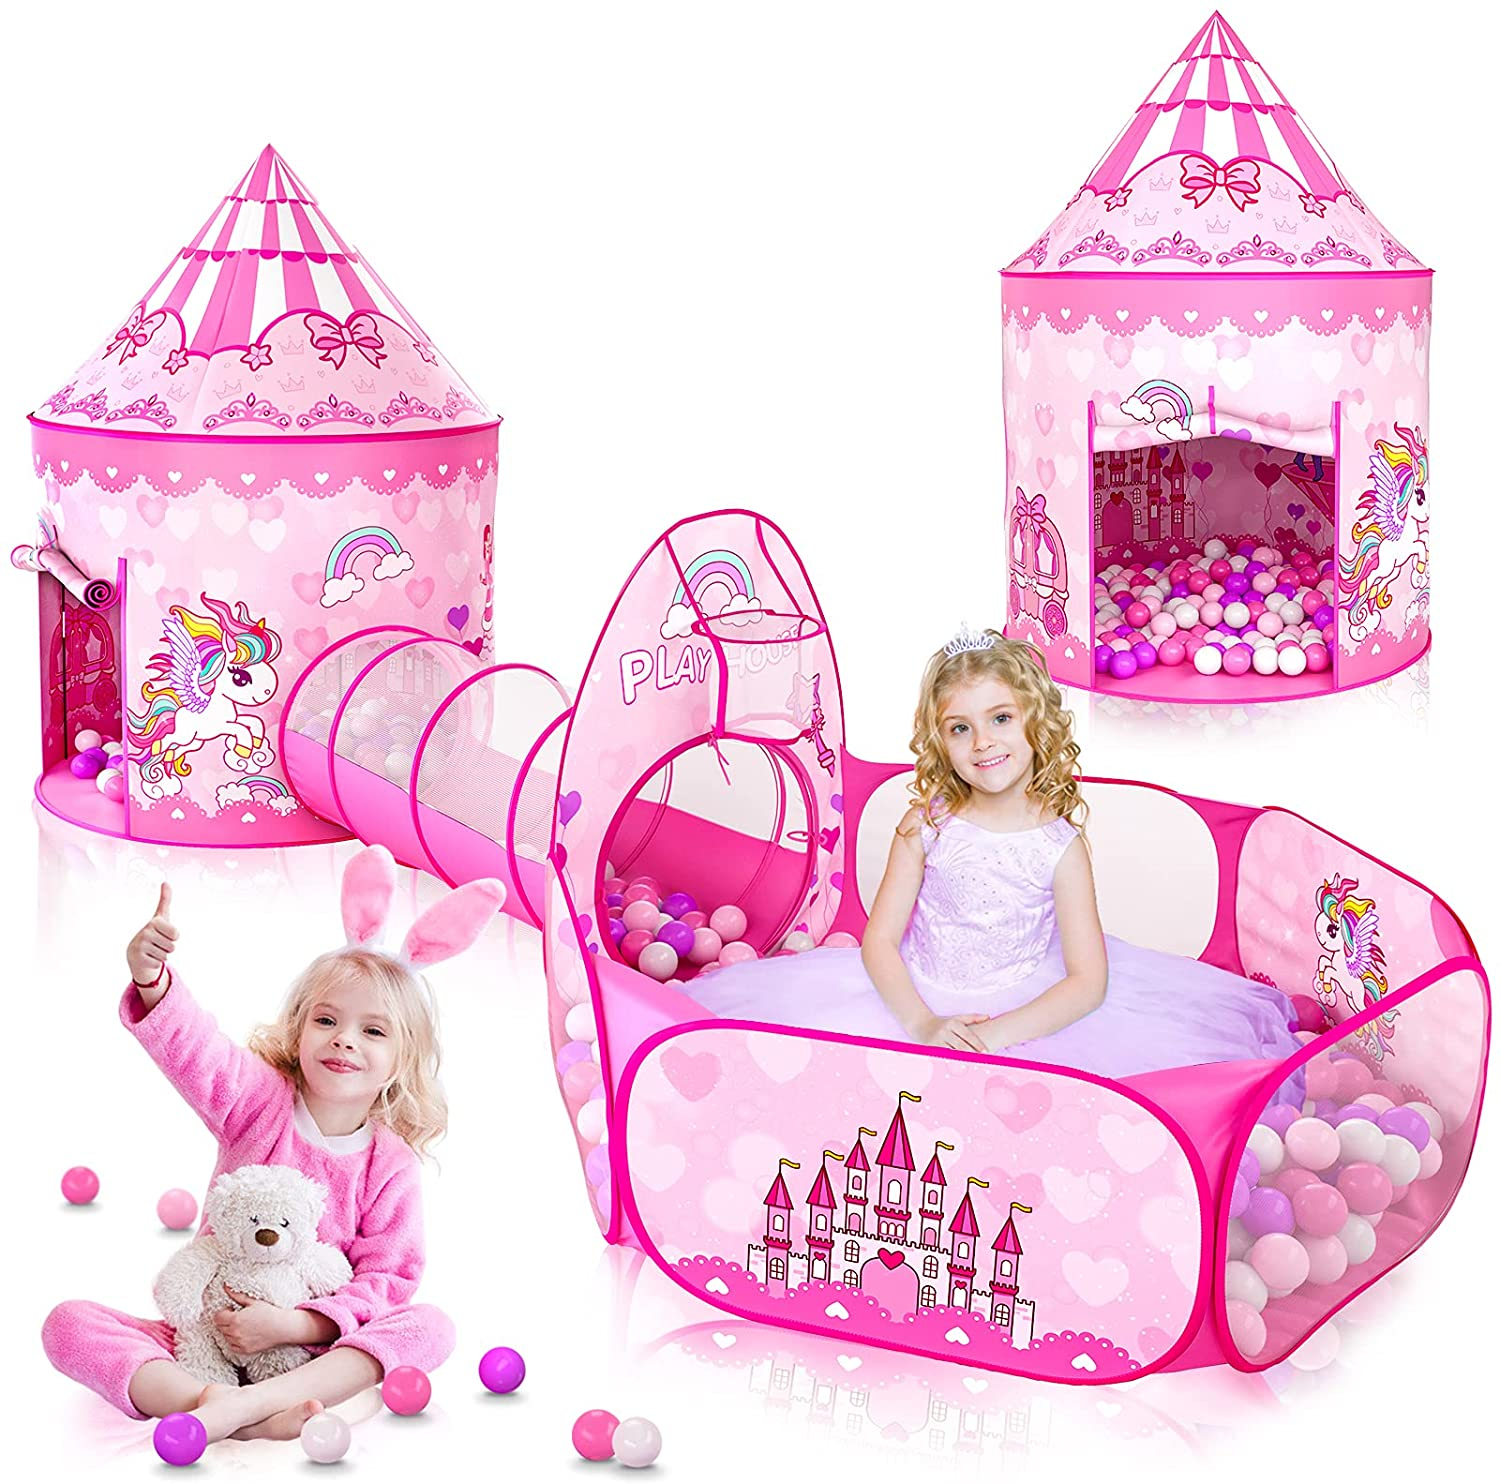 3PC Princess Tent for Girls with Kids Ball Pit, Kids Play Tents and Crawl Tunnel for Toddlers, Pink Pop Up Playhouse Toys for Baby Indoor& Outdoor Tent Games, Birthday Kid's Gifts (Pink Princess 3pc)